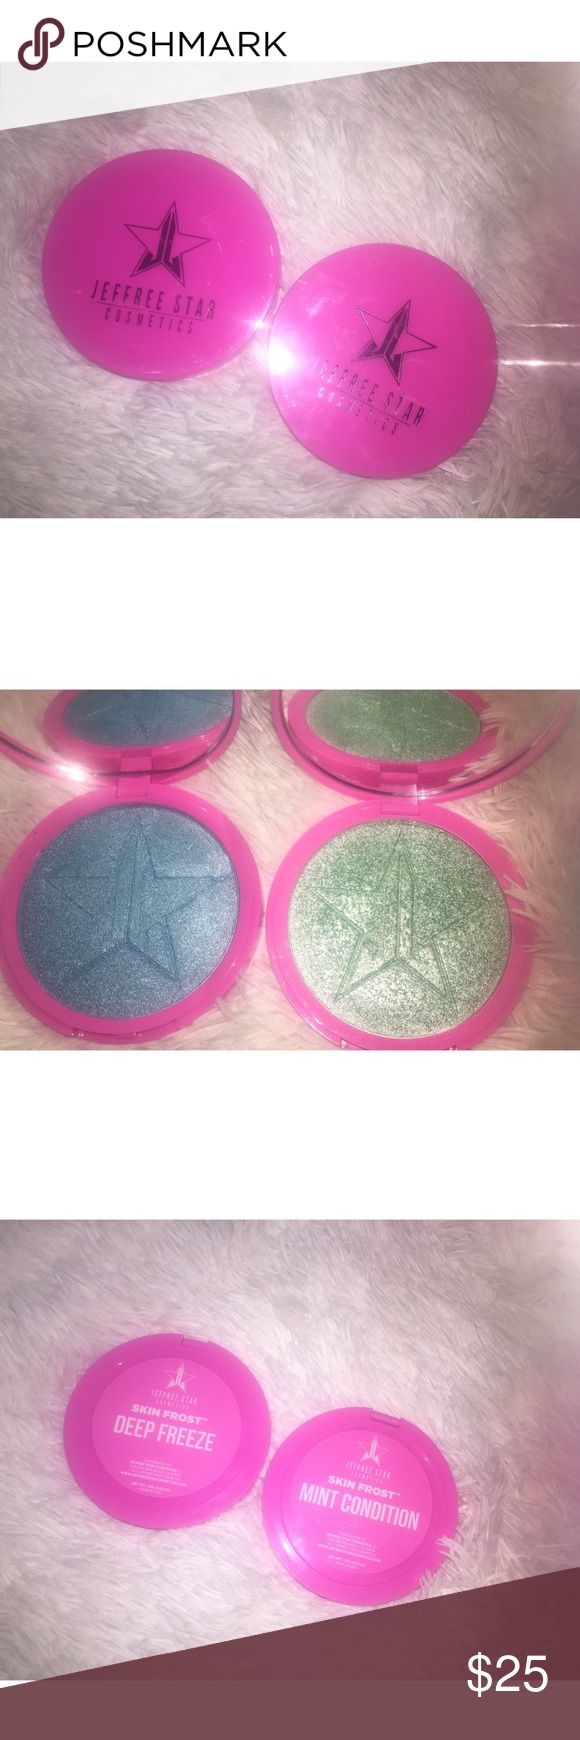 ✨Jeffree Star Mint Condition & Deep Freeze✨ Bundle of two highlighters, both gorgeous fun colors! Deep freeze has been swatched but never used, and I've used mint condition maybe twice. I included a proof of purchase since I know there are a lot of fakes out there. Love both of these but unfortunately must declutter, not looking to trade trying to downsize! ✨ Makeup Luminizer